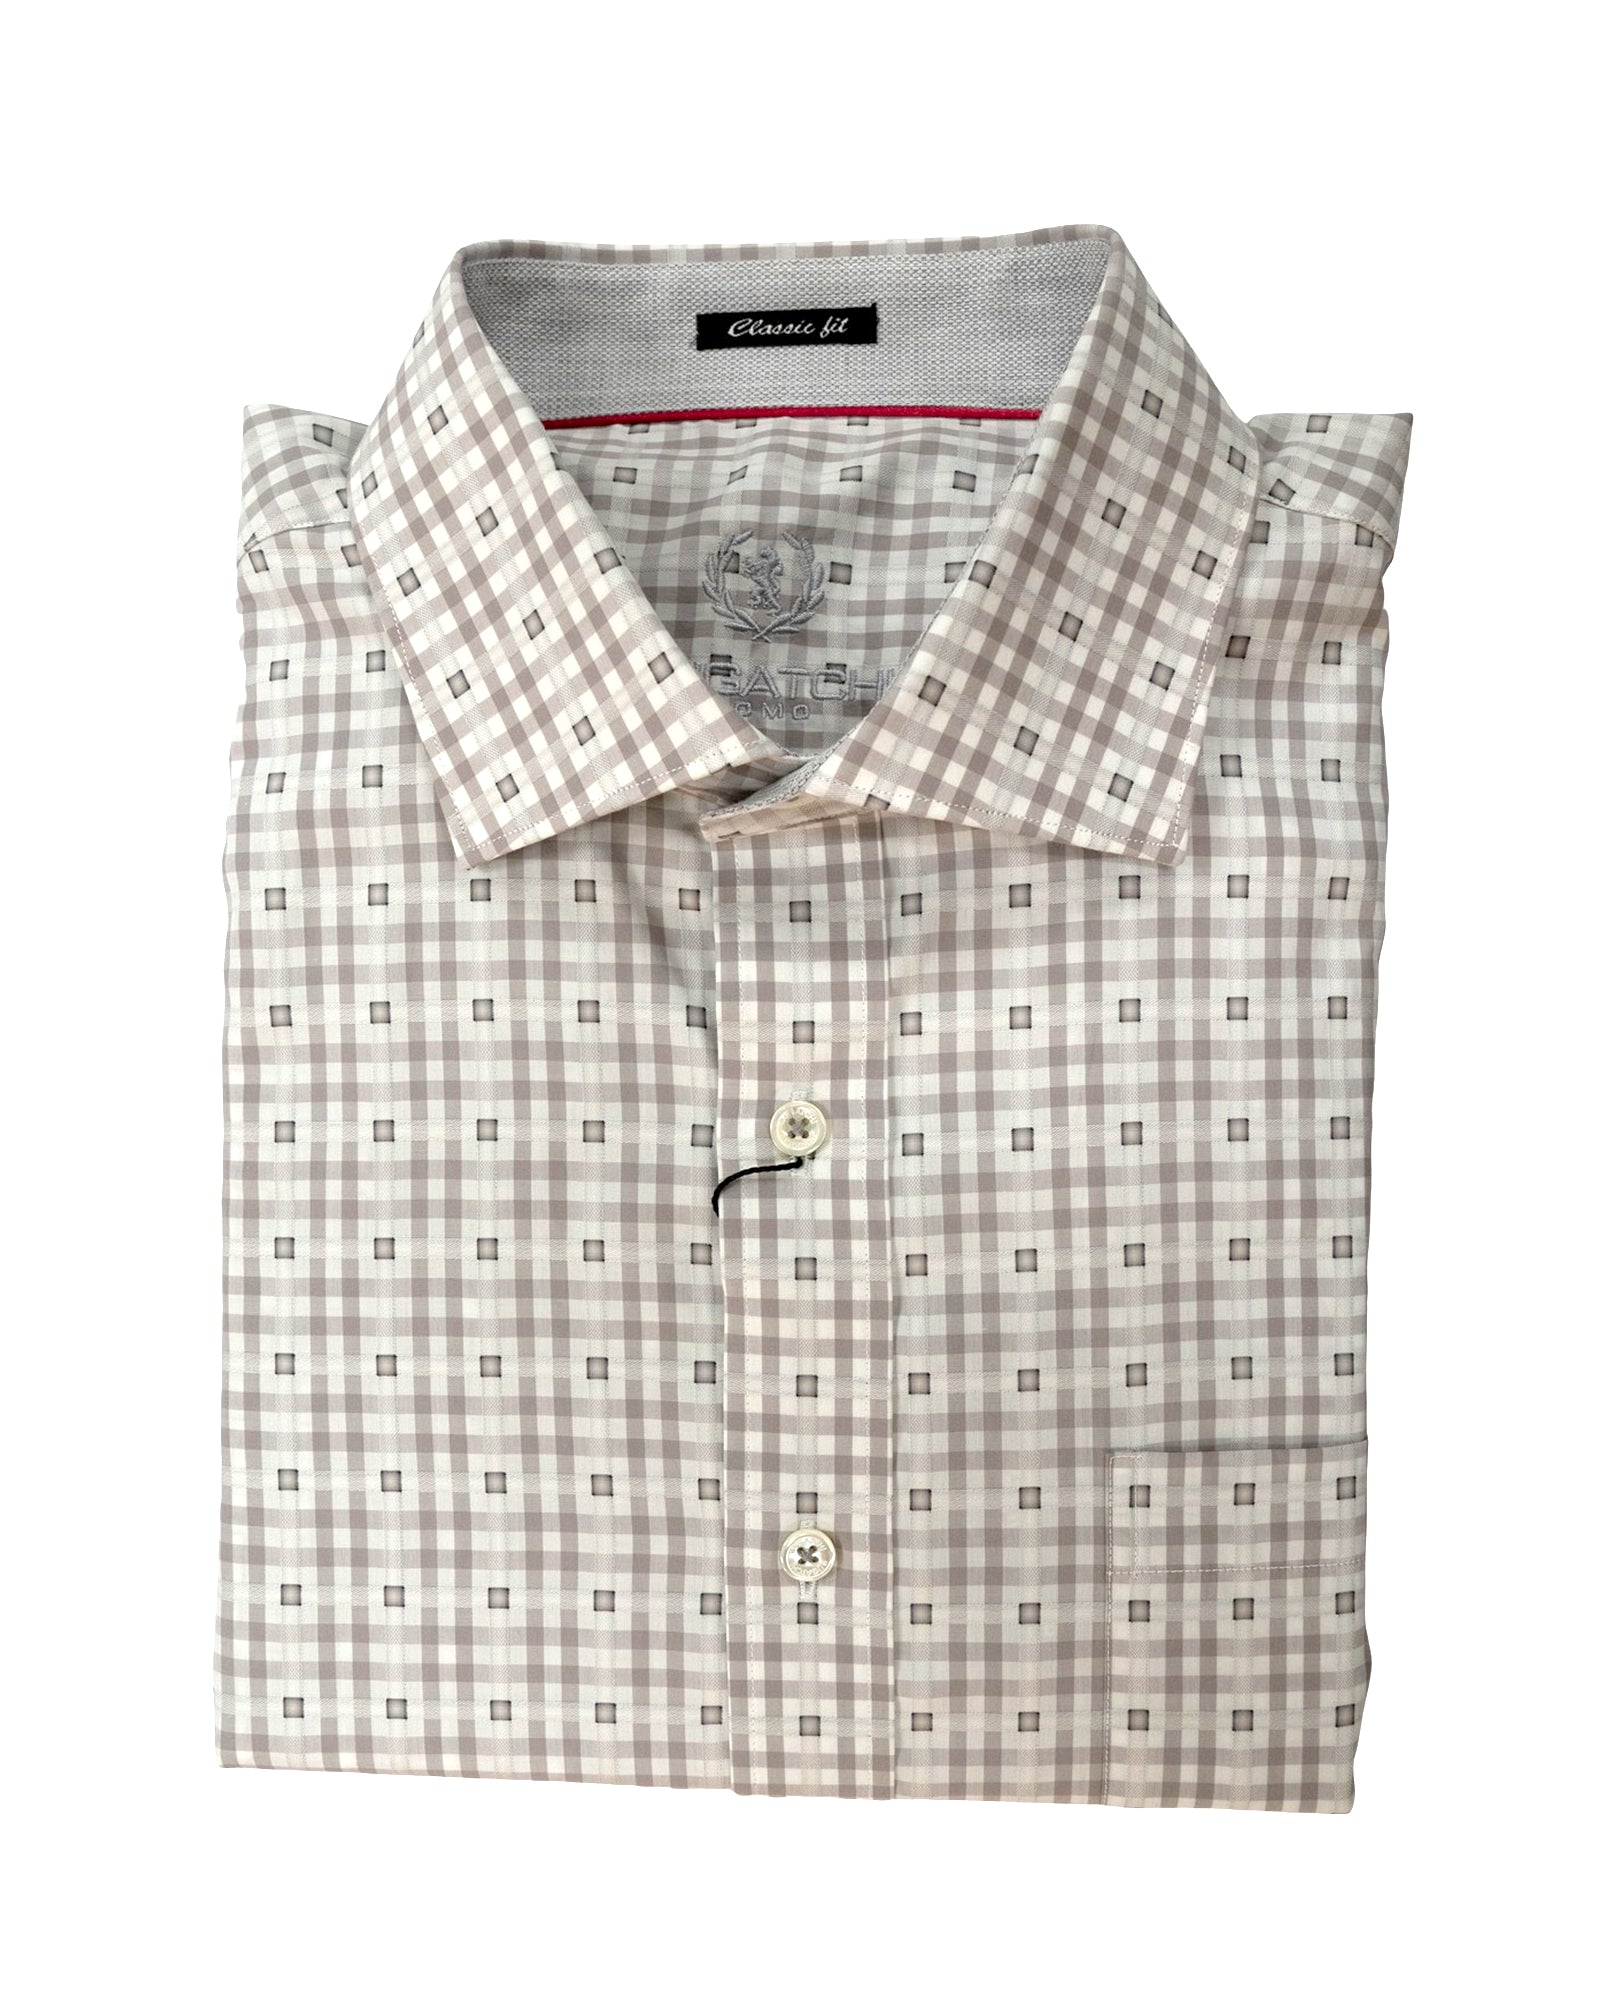 Bugatchi Platinum & White Check Sport Shirt - Rainwater's Men's Clothing and Tuxedo Rental